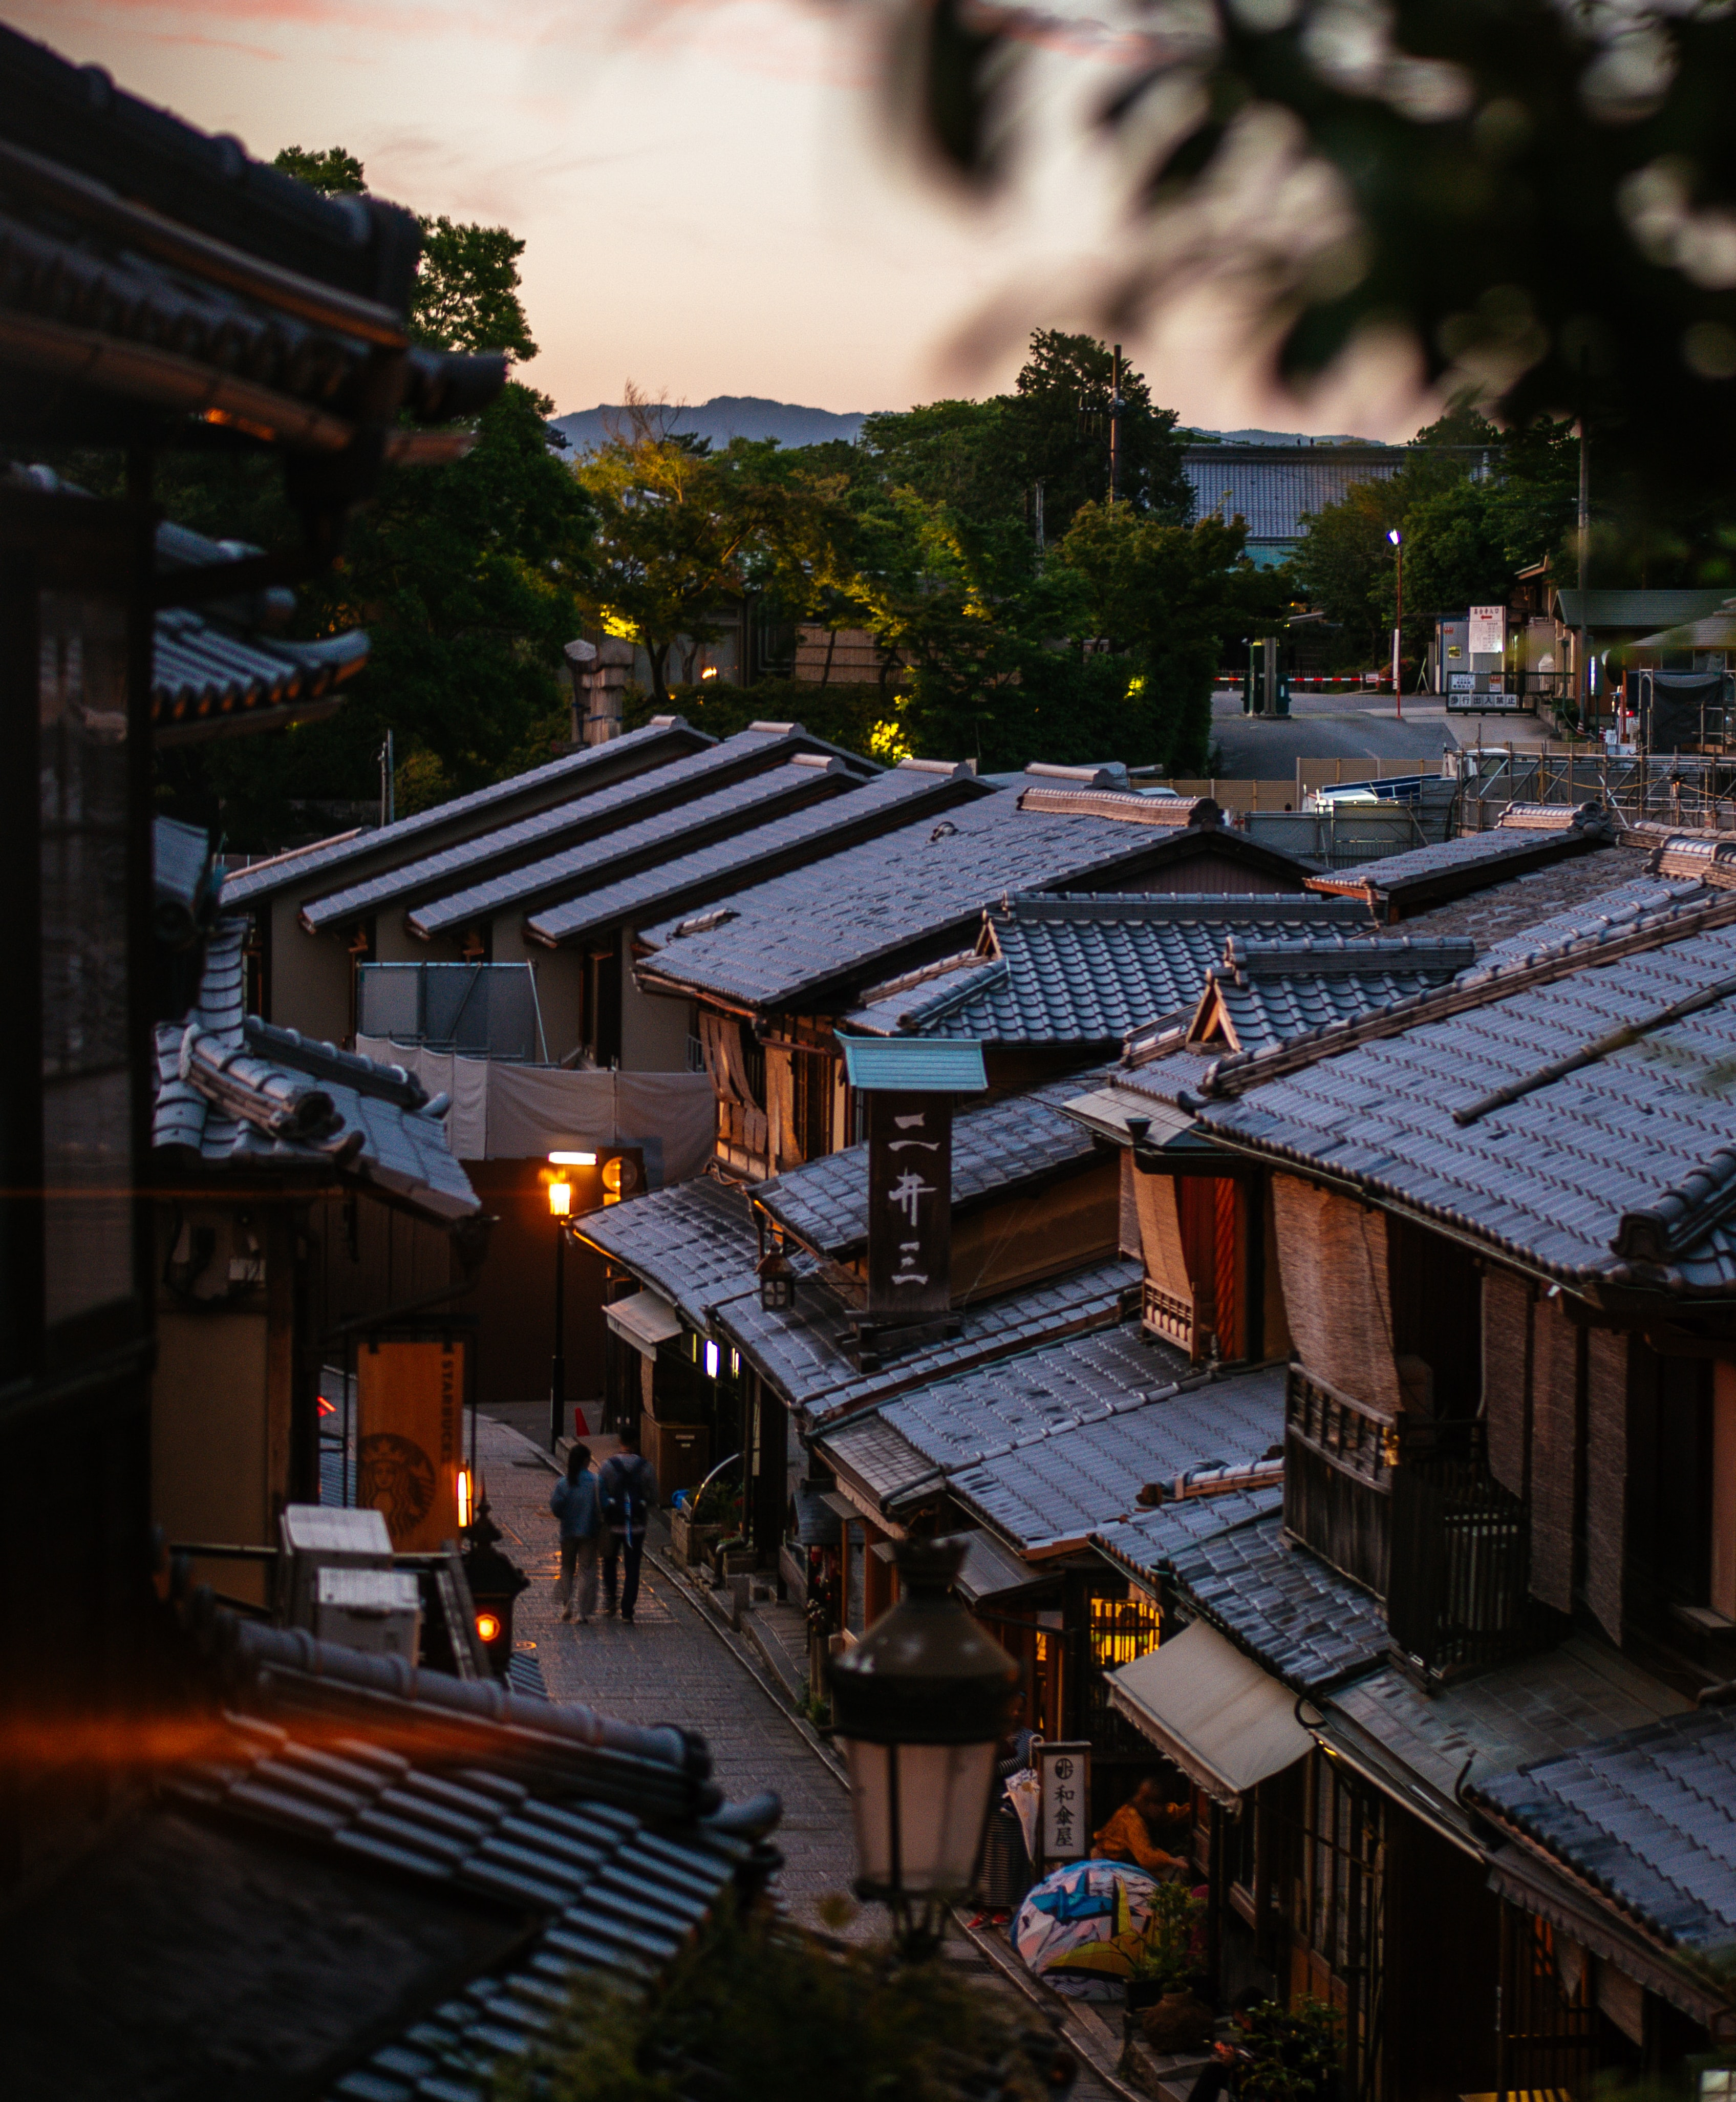 Sunset view of the streets in the Gion district from Kyoto highlighting the Japanese architecture. Photo by Cosmin Serban, Unsplash.